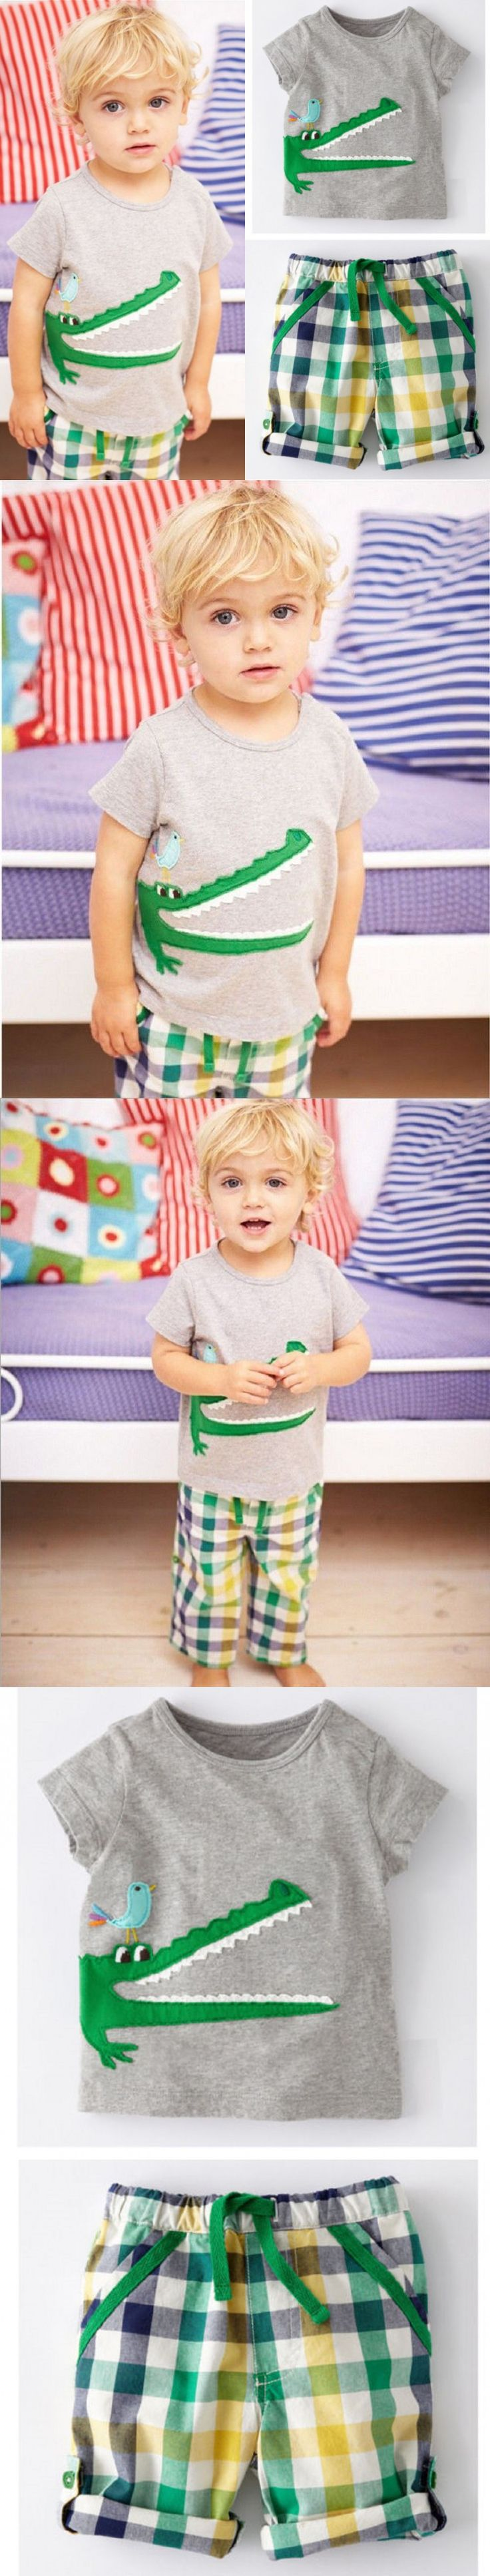 Toddler Baby Kids Boys Summer Clothes Tops T-shirt Pants Outfits Set Size 2T-7T $6.66